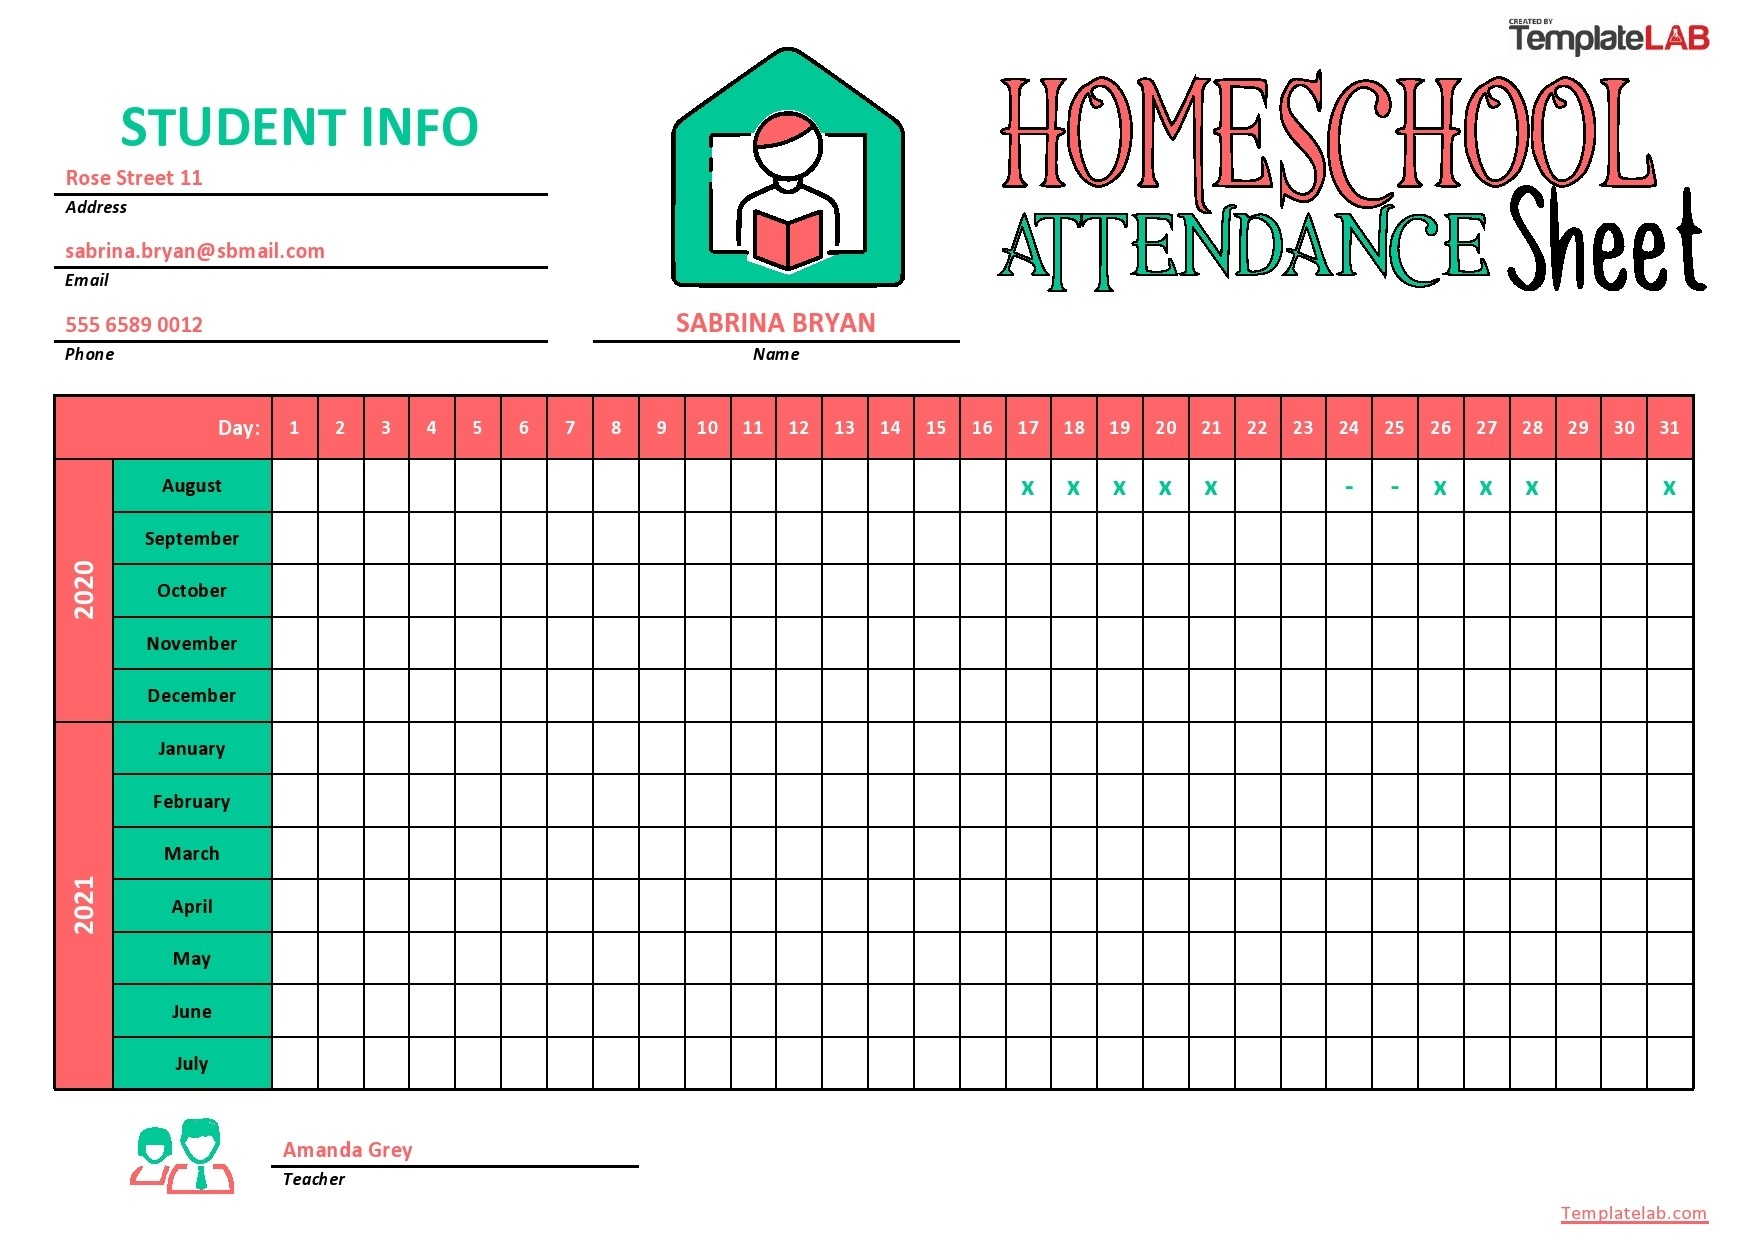 43 Free Printable Attendance Sheet Templates - Templatelab  Free Attendance Sheet Pdf 2021